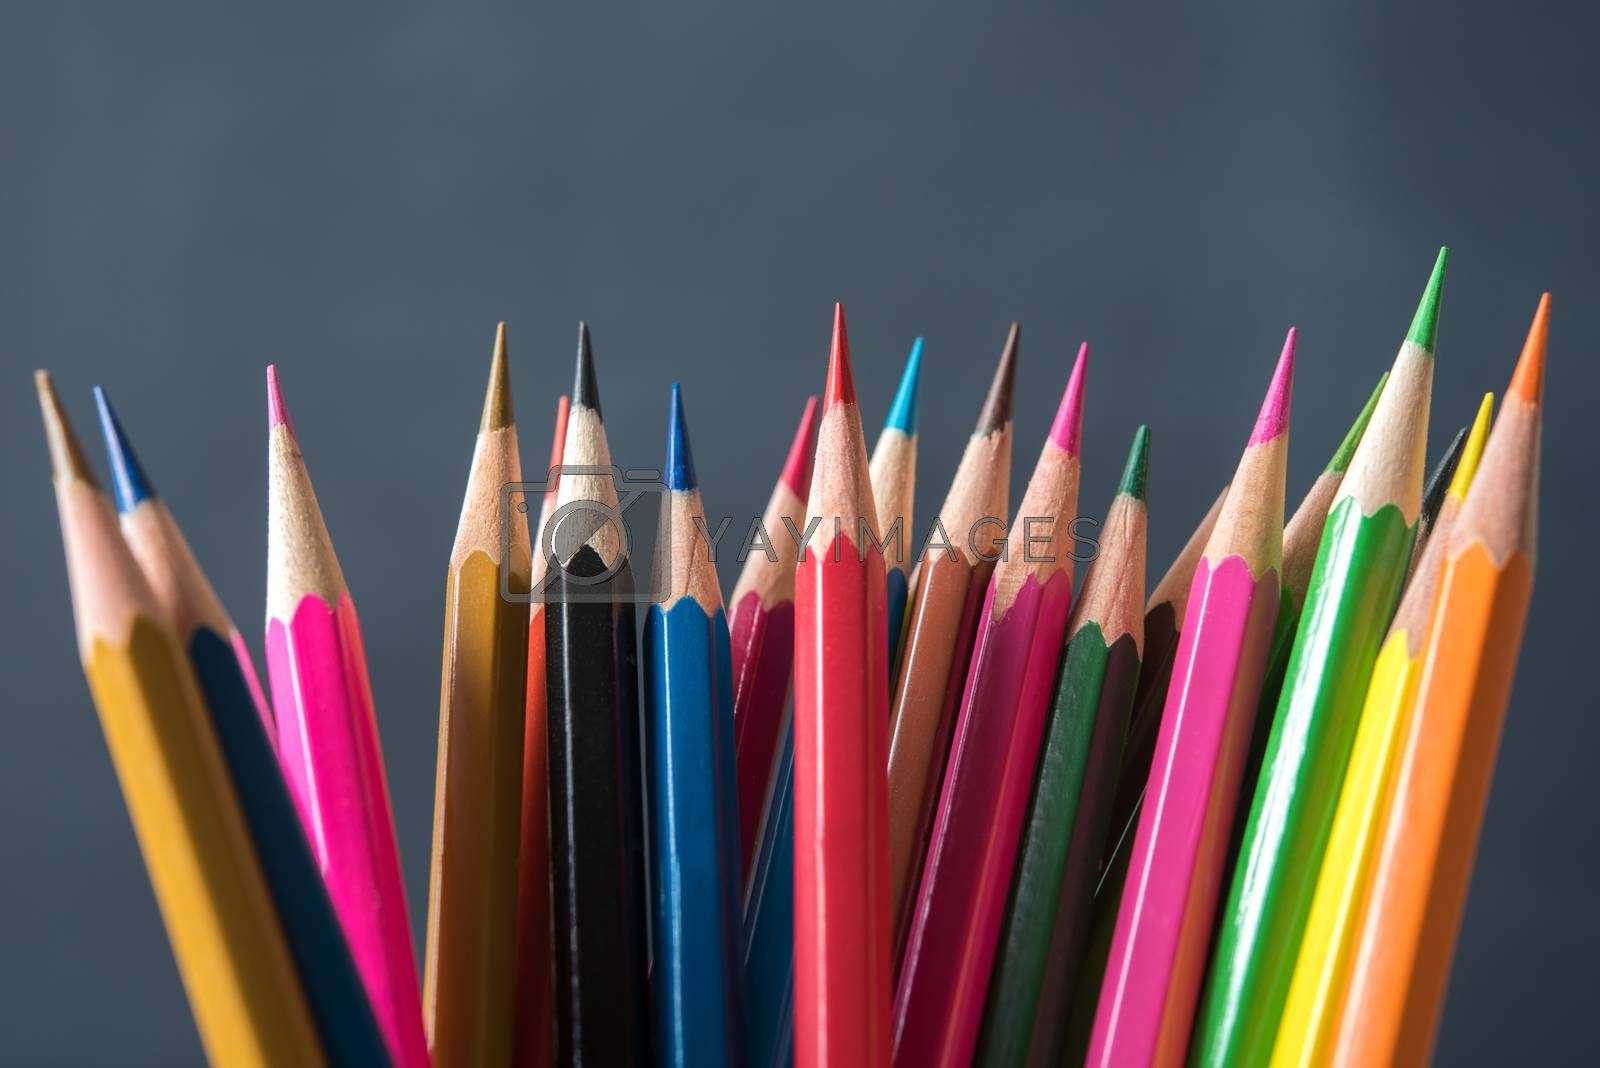 rows of multicolor pencil on black chalkboard background by Lerttanapunyaporn